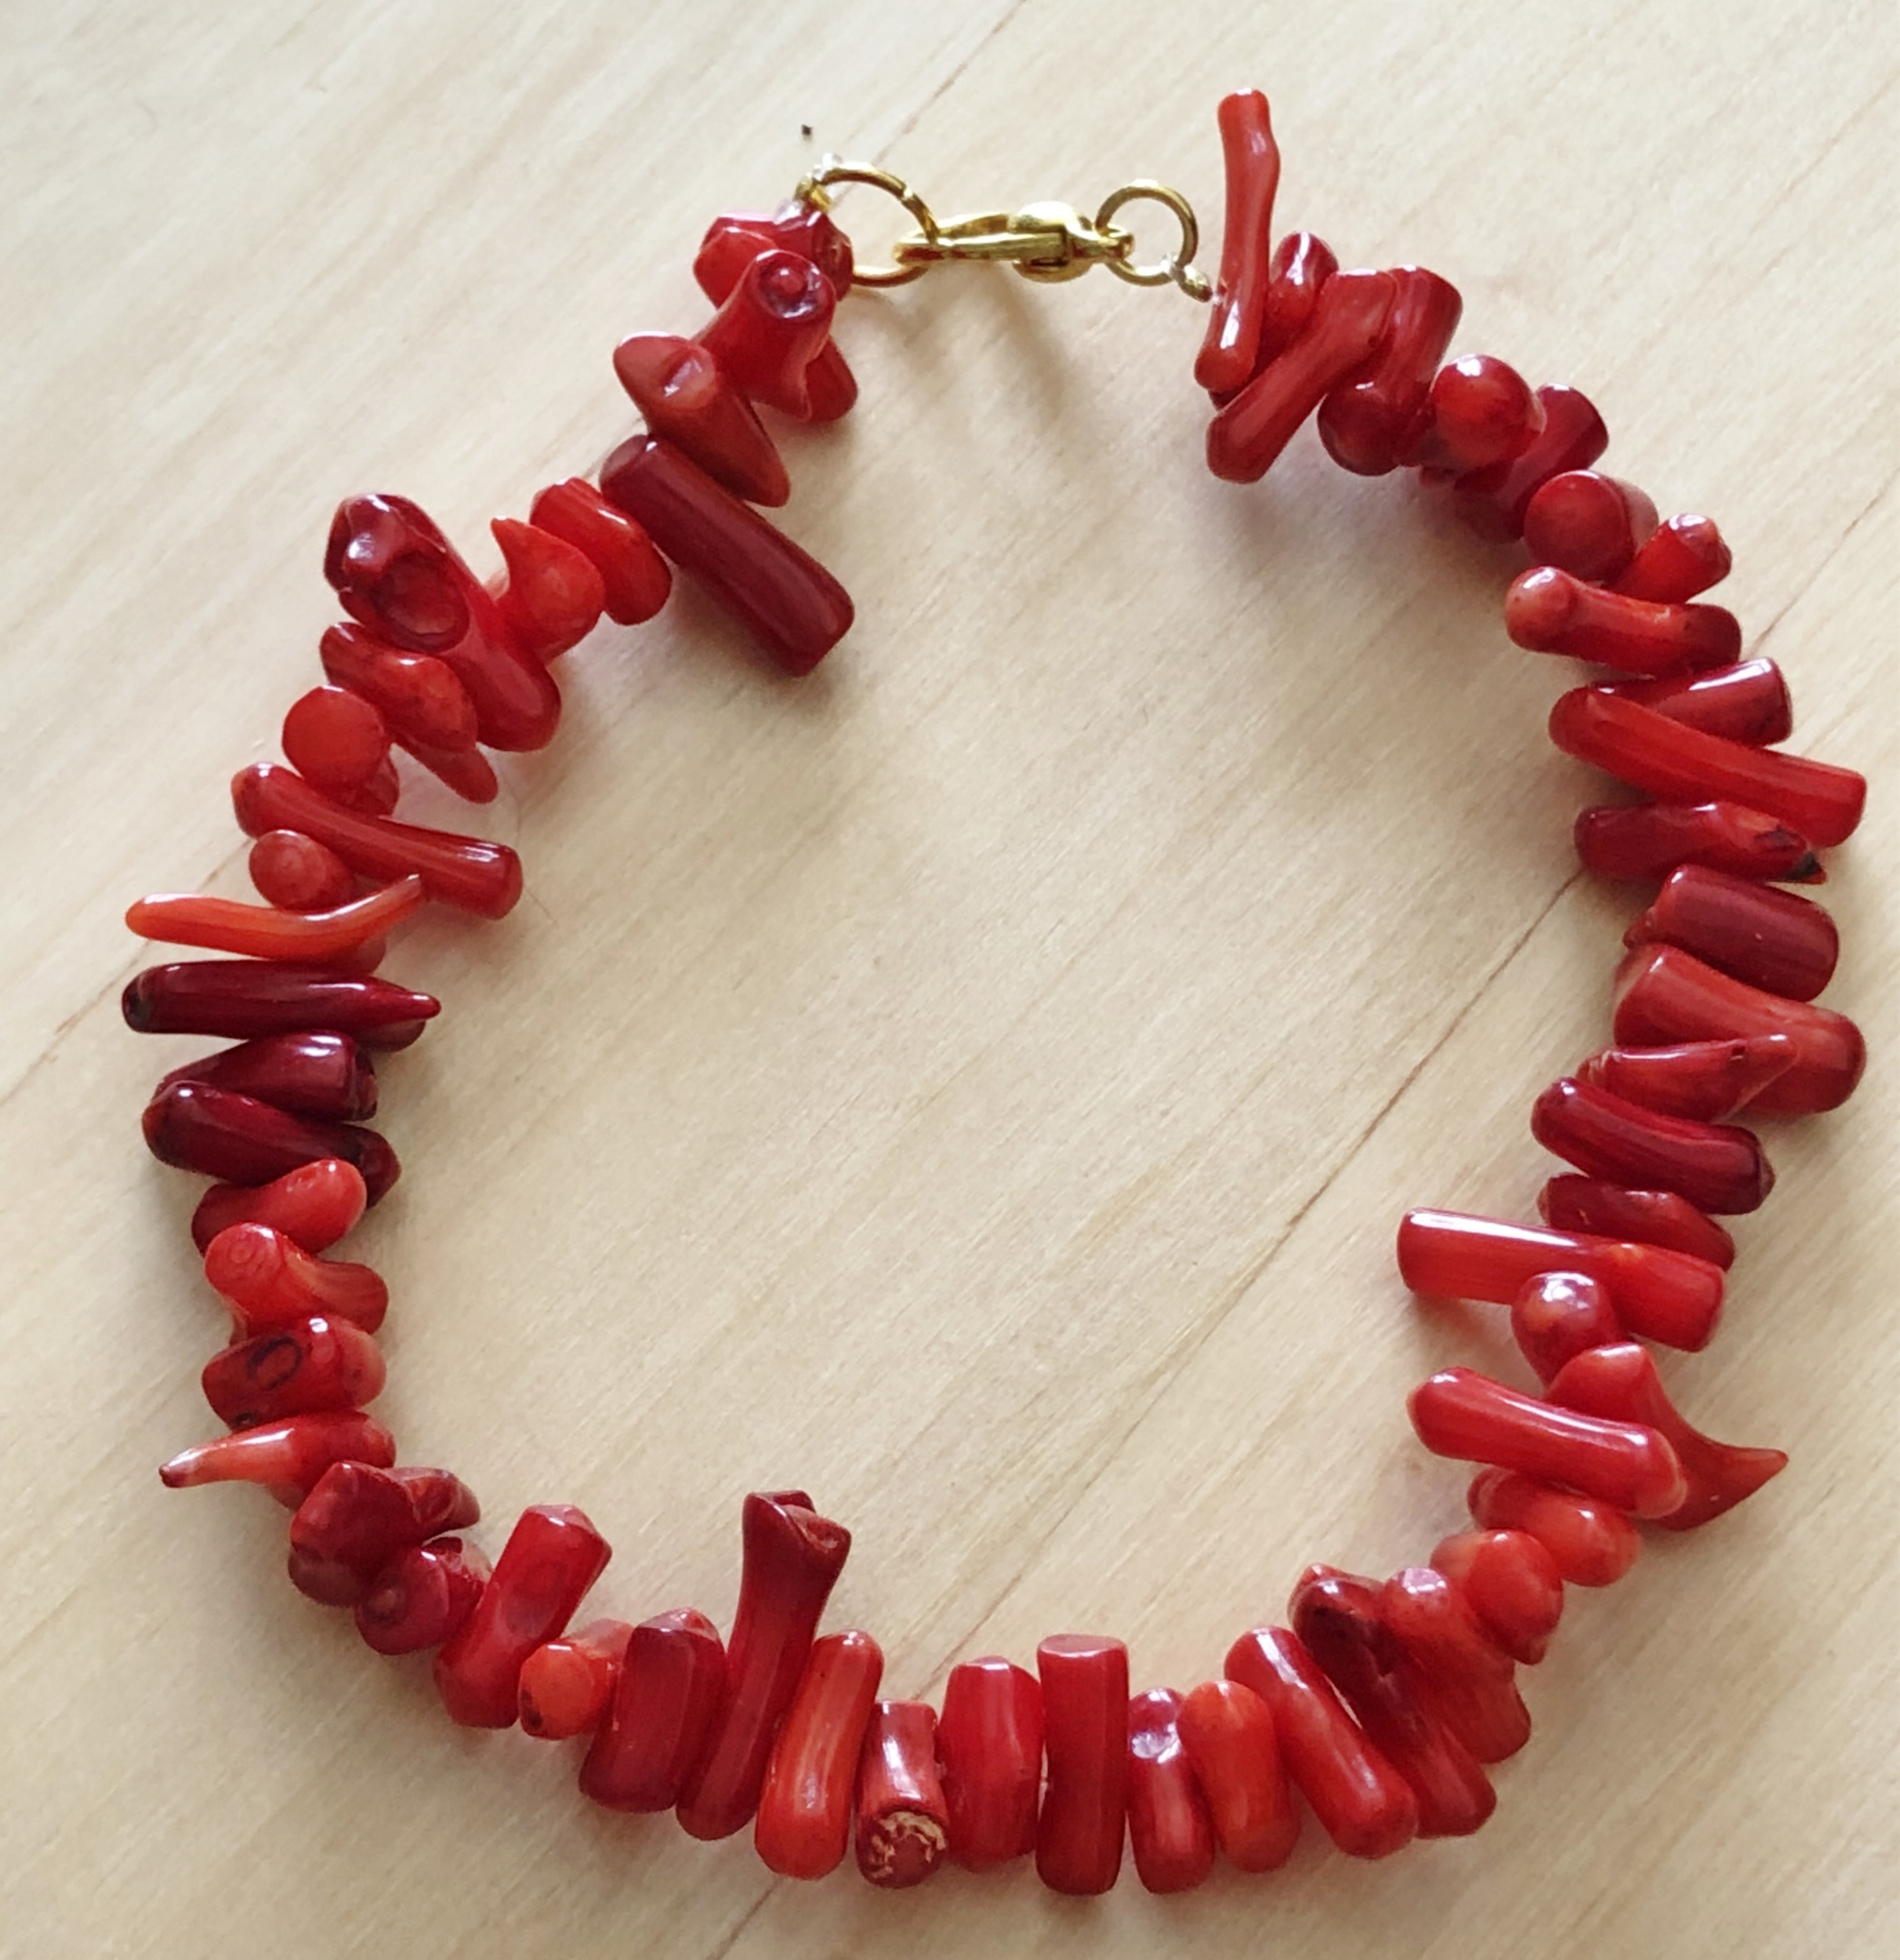 Bracelet corail rouge véritable forme libre  - Angel shop